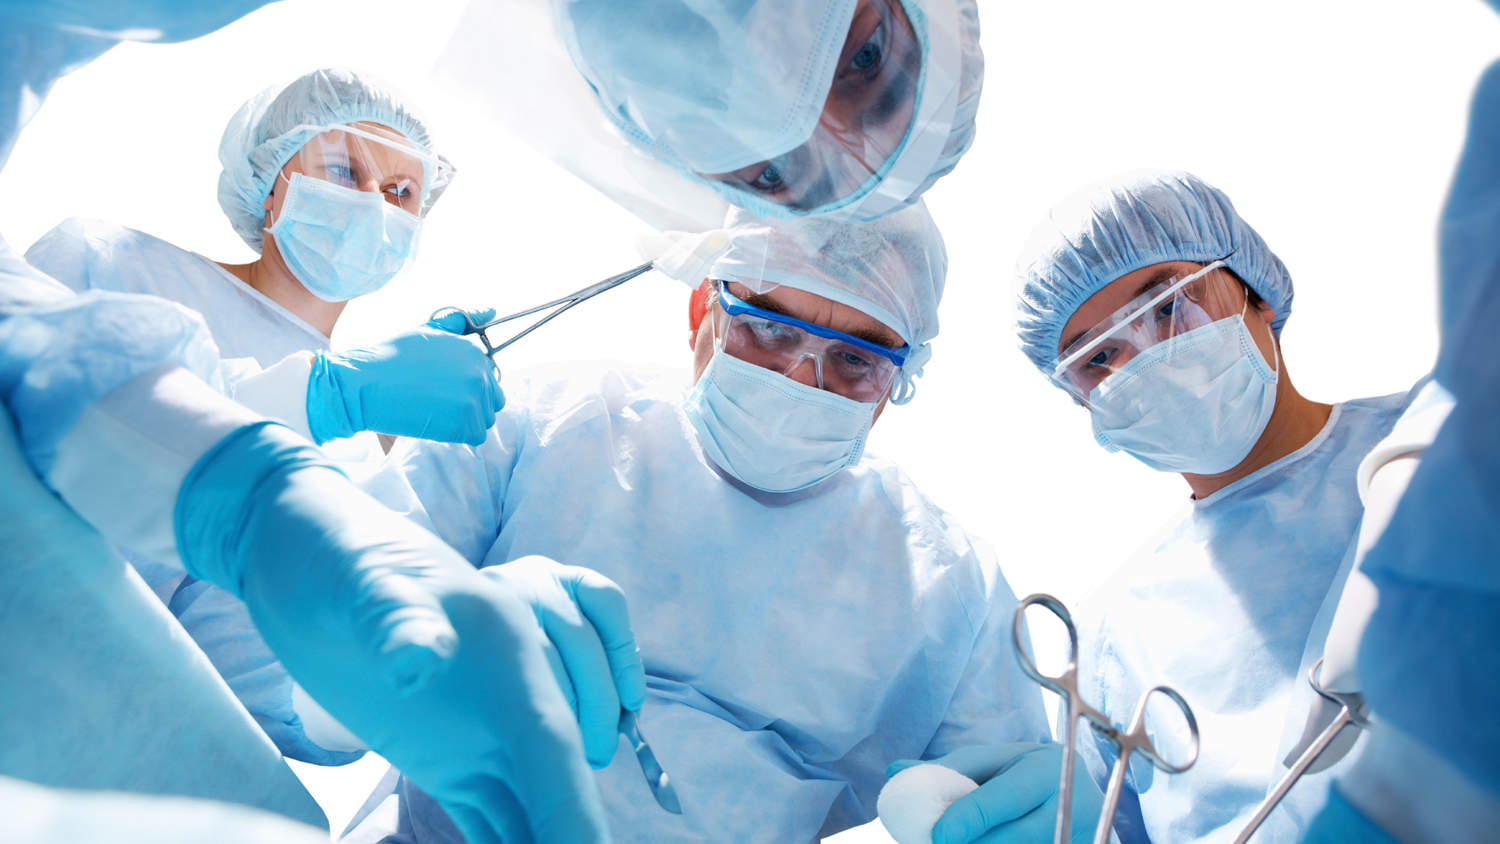 Best Date For Surgery Based On Astrology - Astronlogia